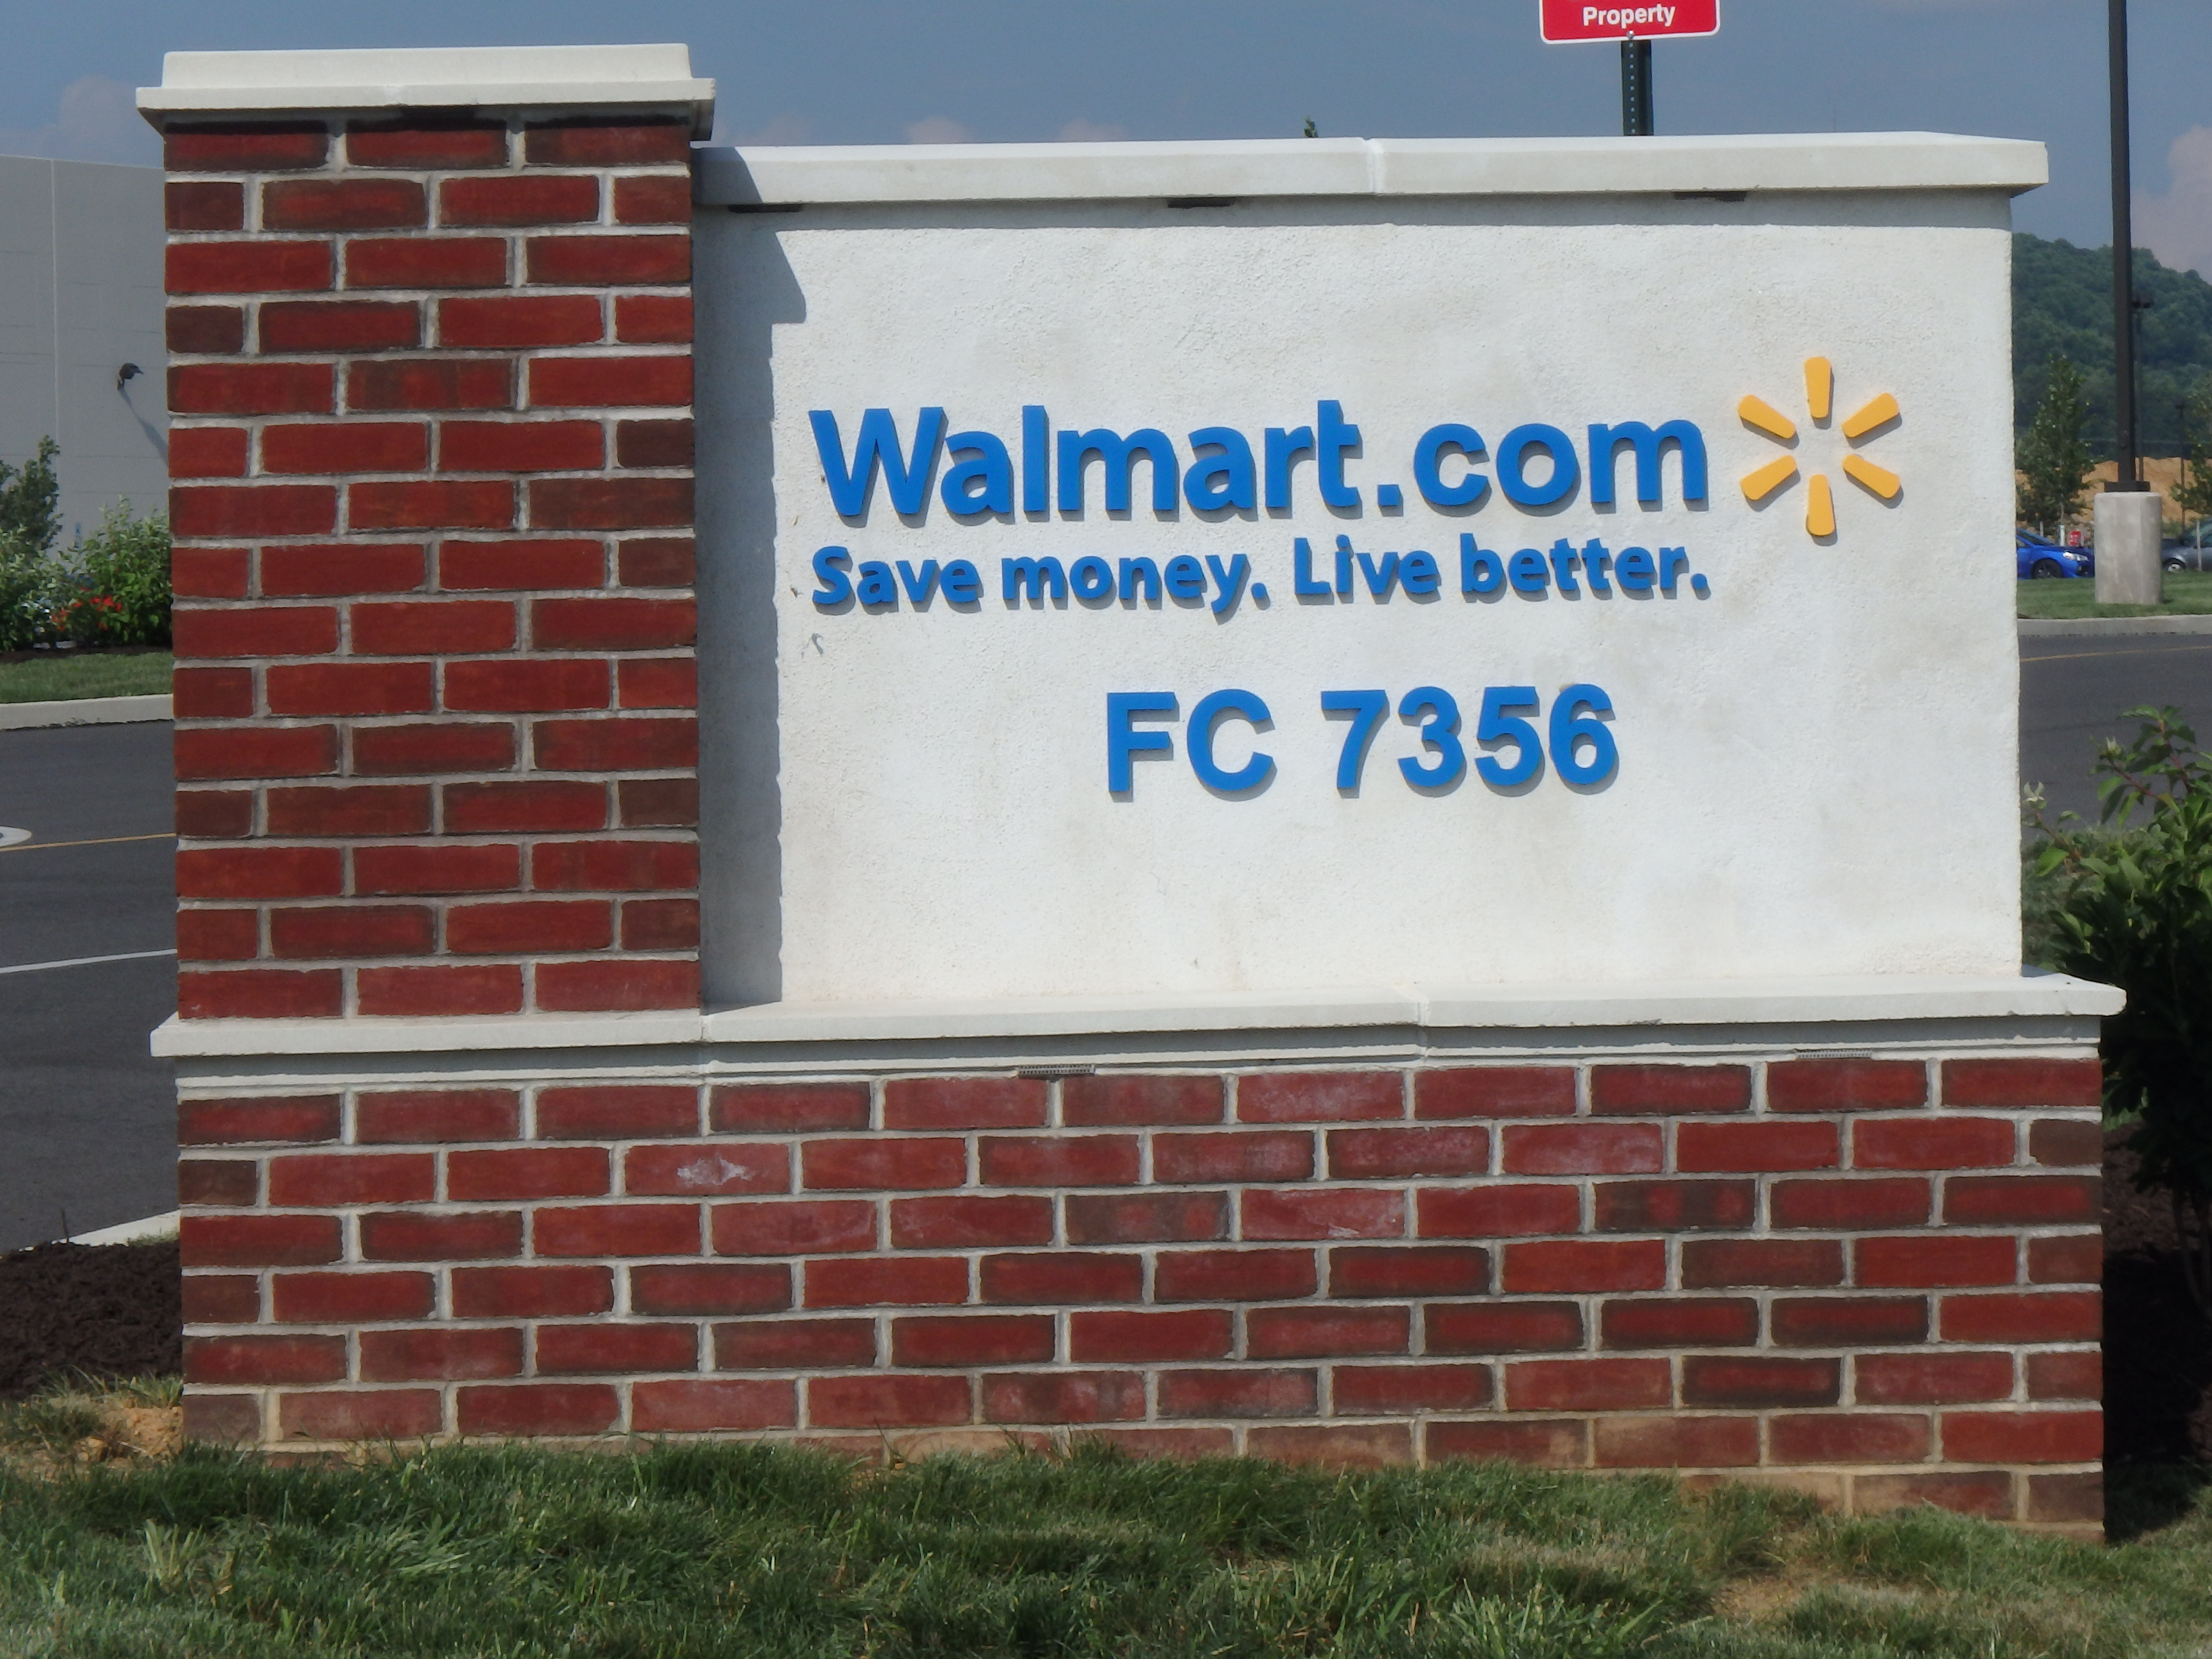 The Future Of Wal-Mart Is In The Web - Walmart Inc. (NYSE ...